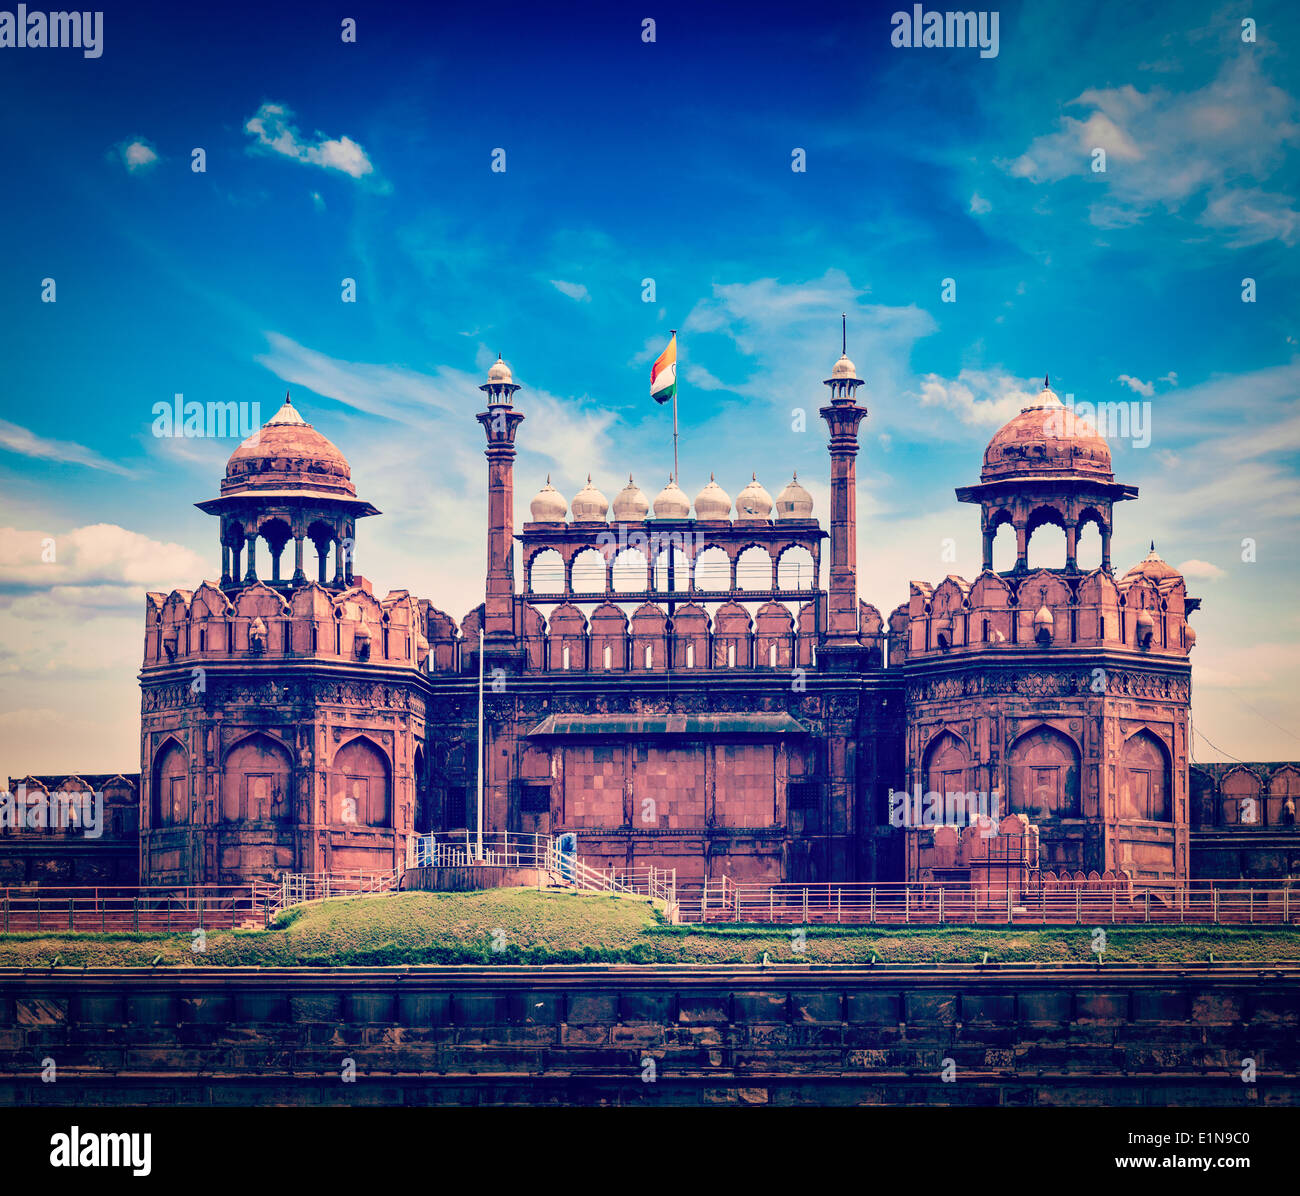 Vintage retro hipster style travel image of India travel tourism background - Red Fort (Lal Qila) Delhi - World Heritage Site. - Stock Image